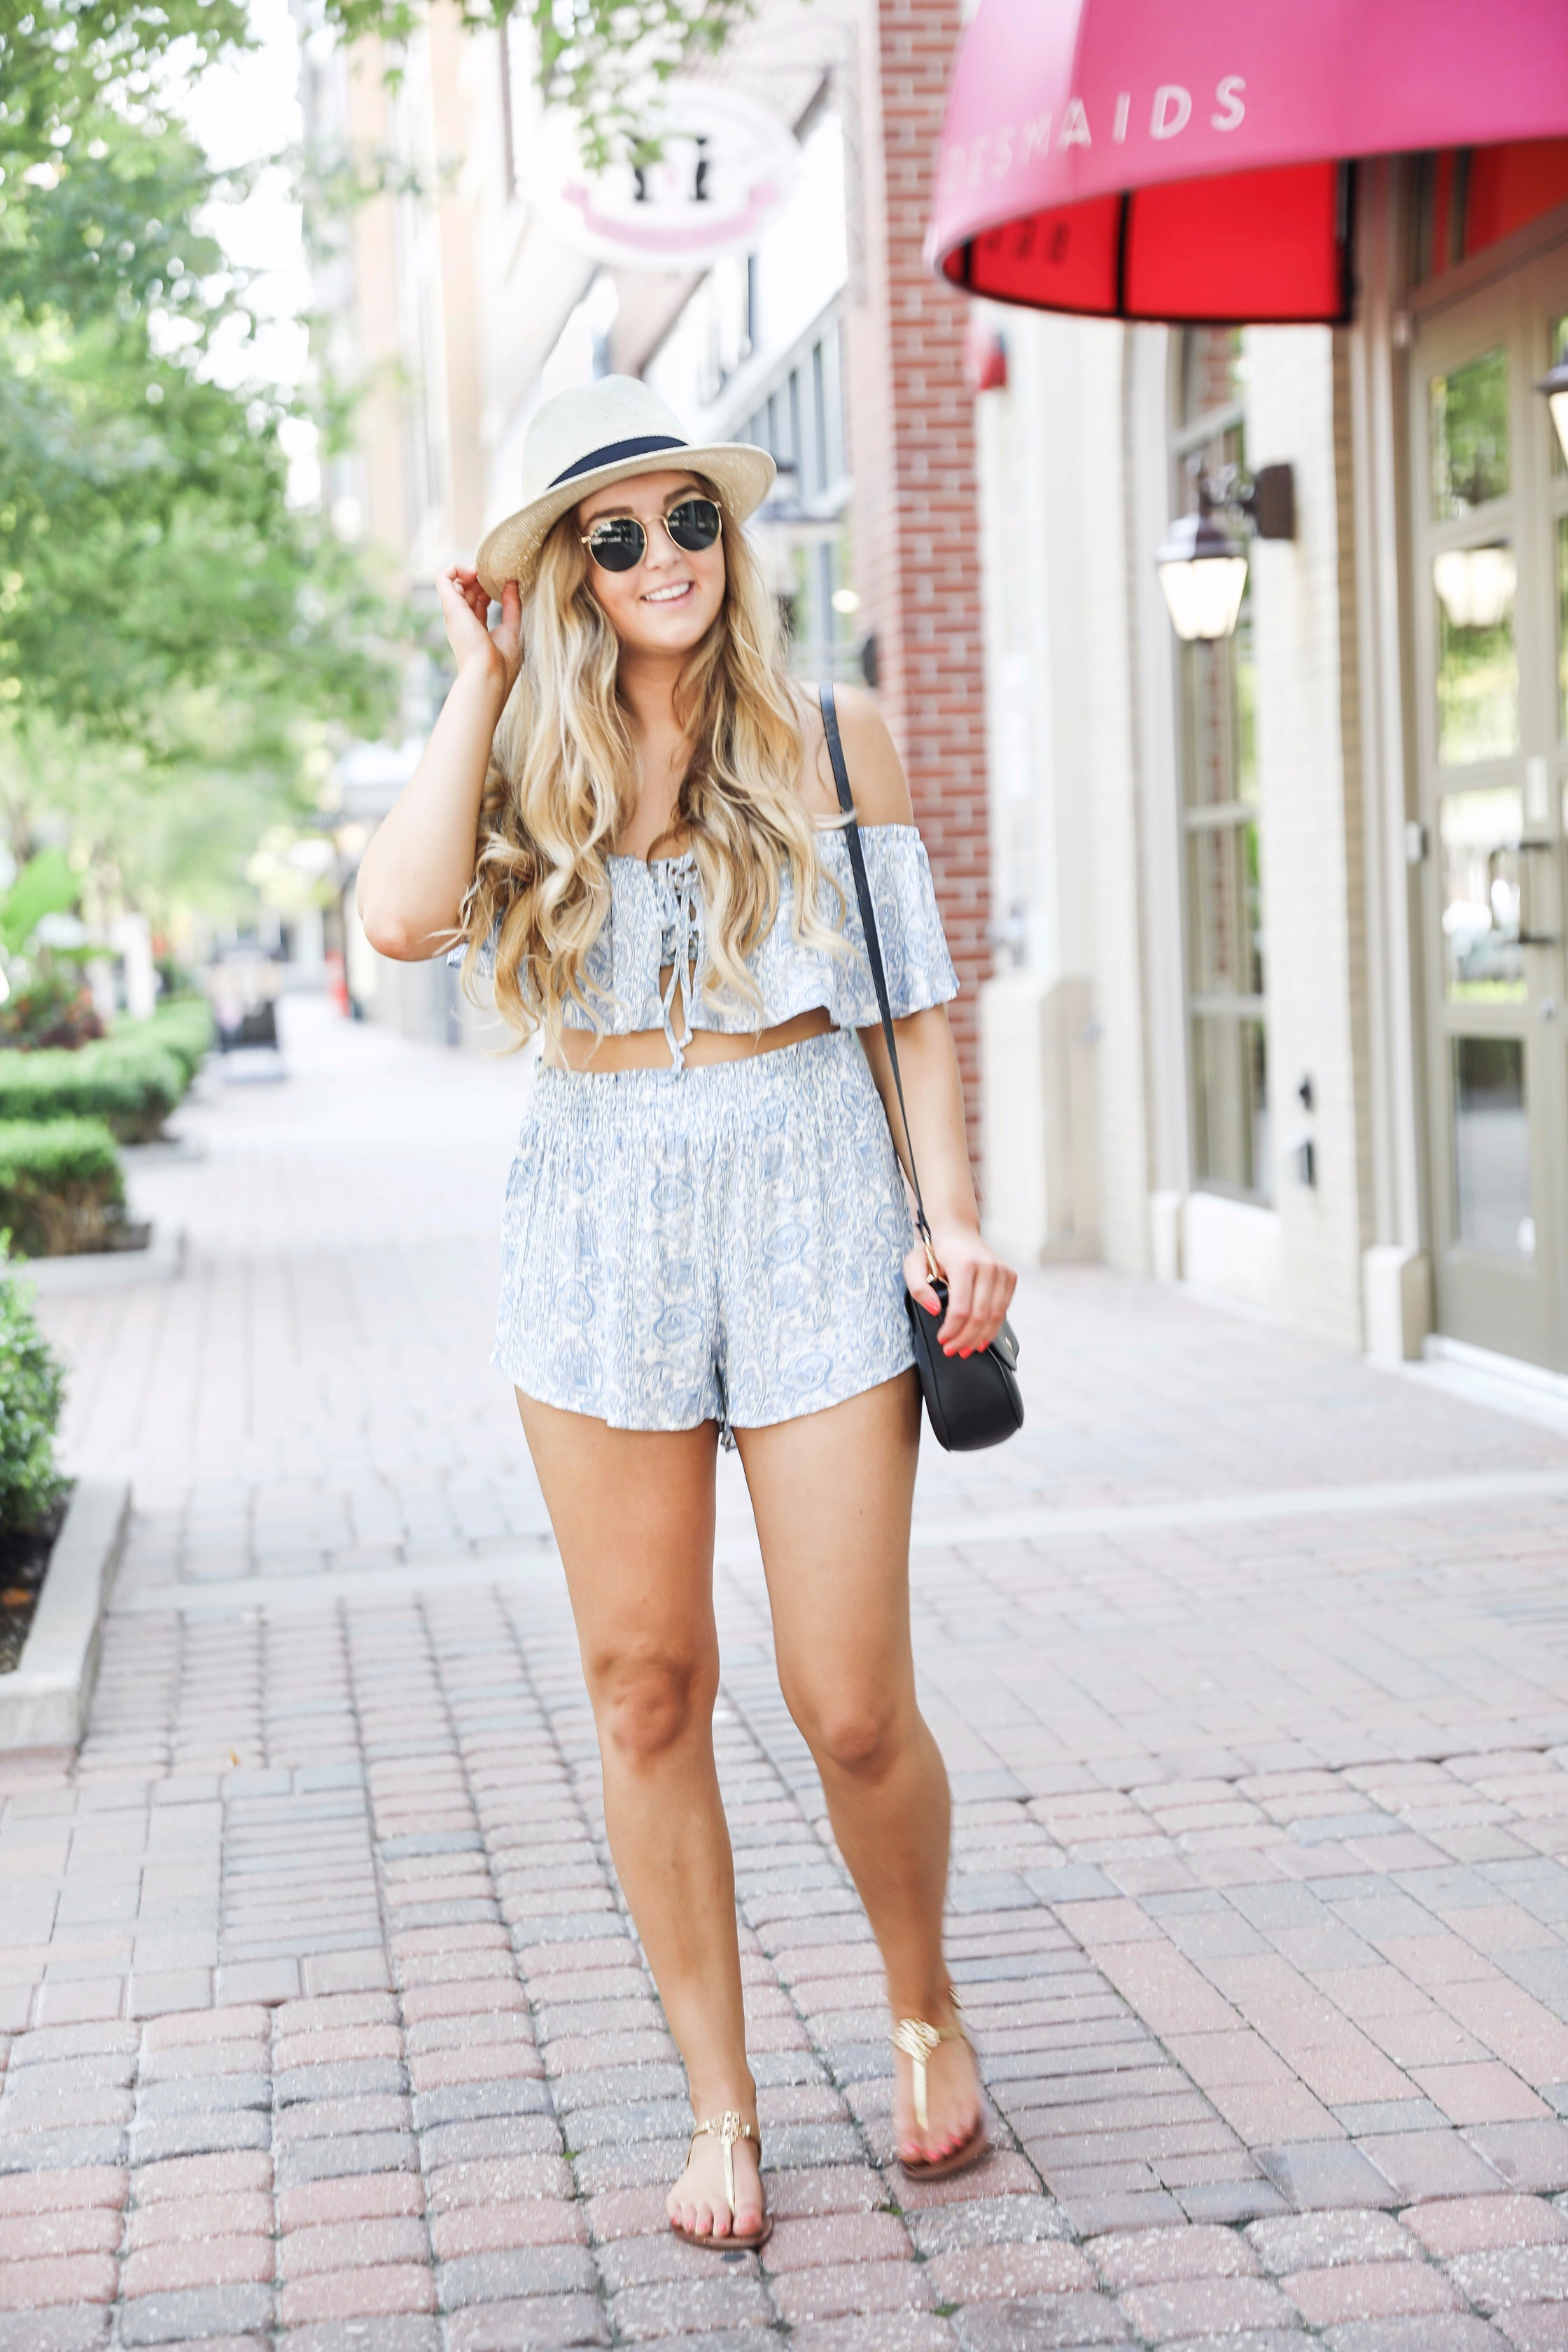 Blue flowy two piece outfit perfect for casual summer days or nights out! I love two piece outfits, this one is so fun and inexpensive! Find the details on fashion blog daily dose of charm by lauren lindmark